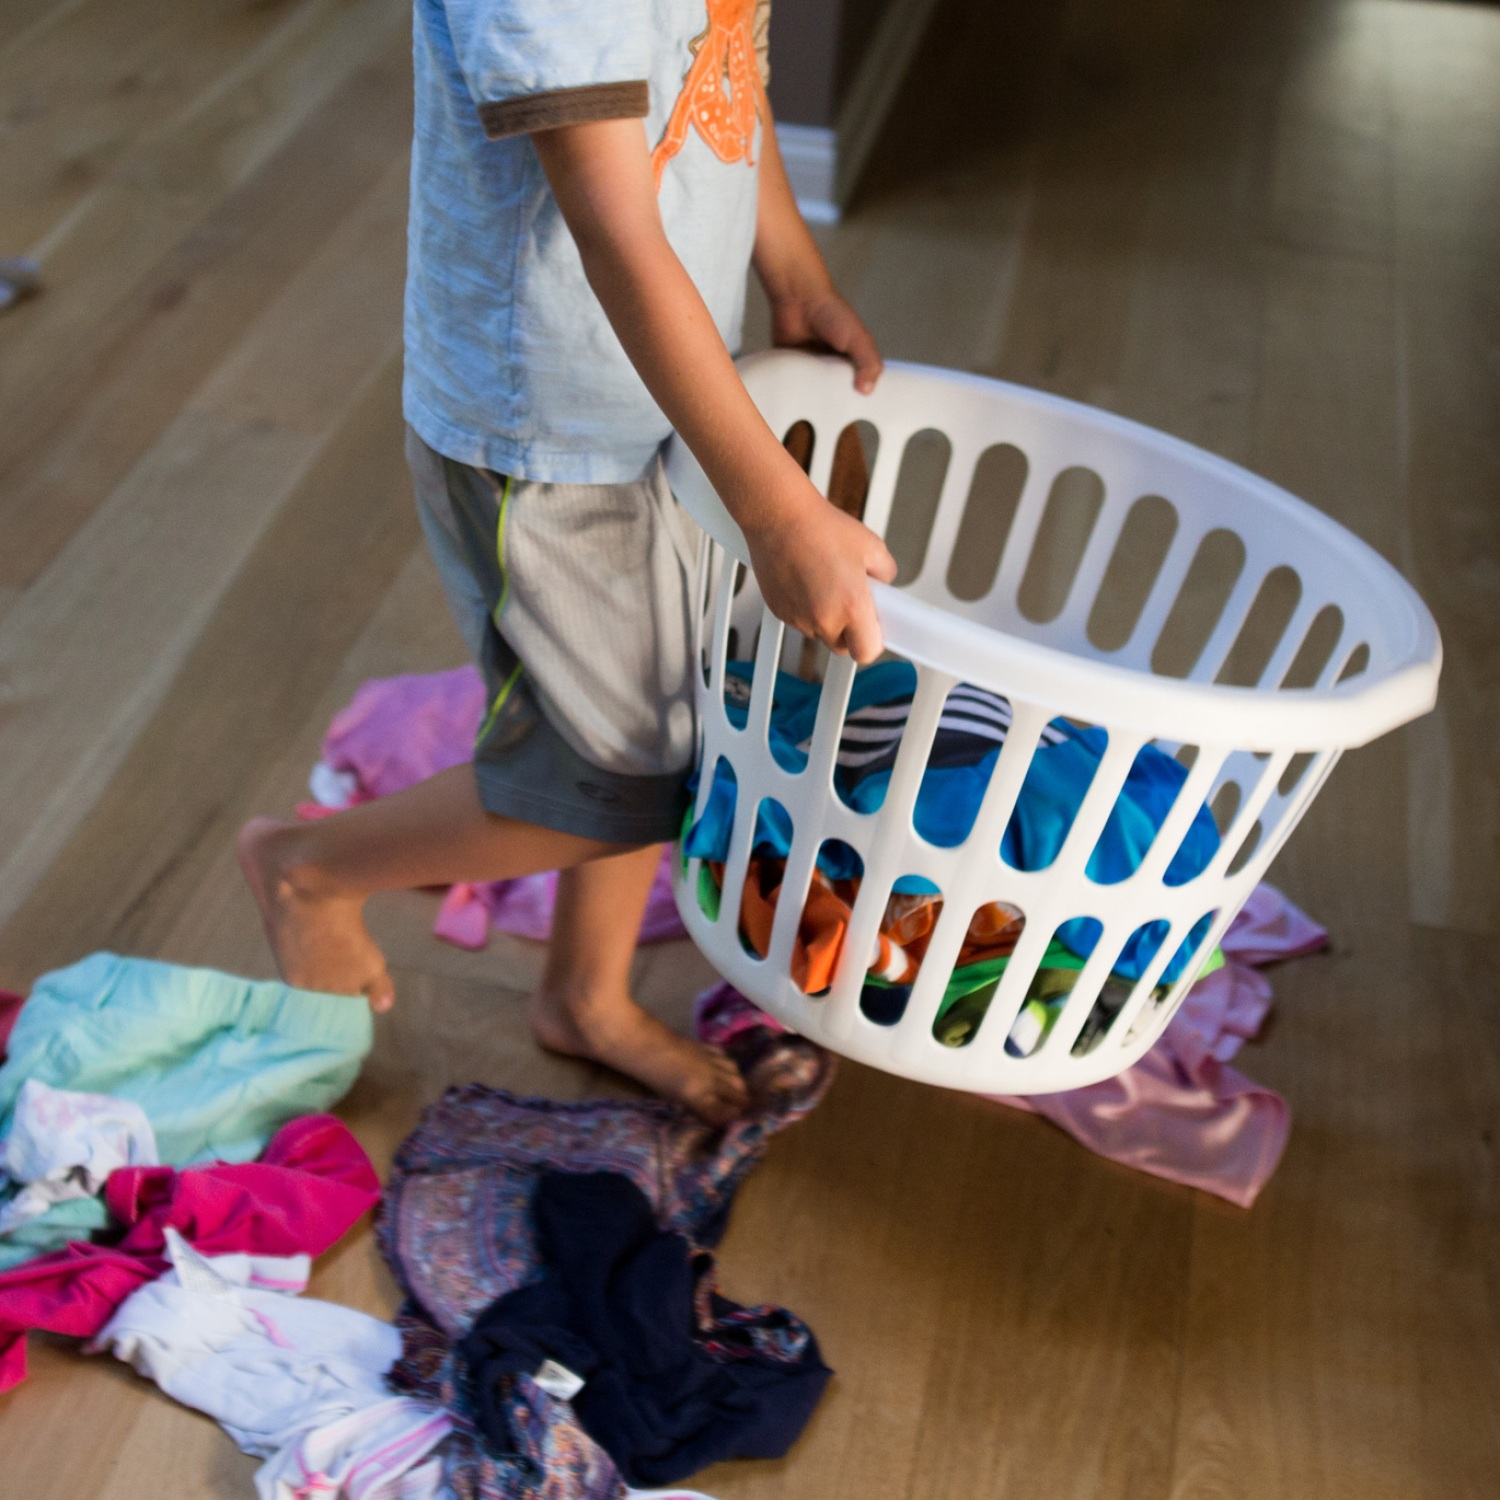 Boy carrying a basket of laundry